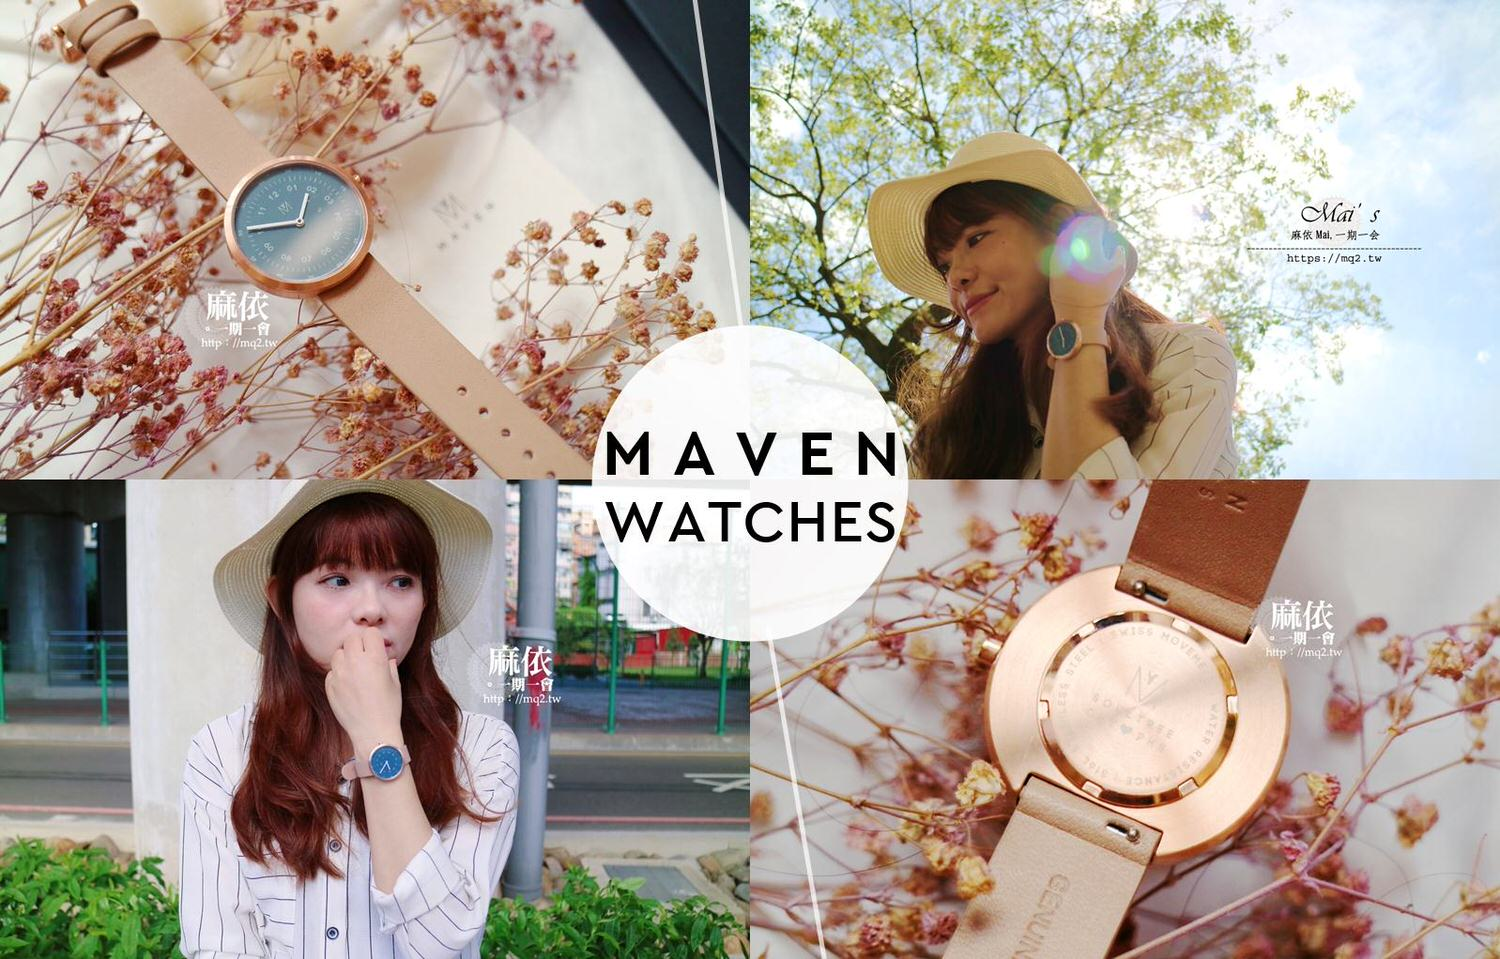 MAVEN Watches手錶│客製化刻字 極簡文青質感風 穿搭簡約有型,私心超推!